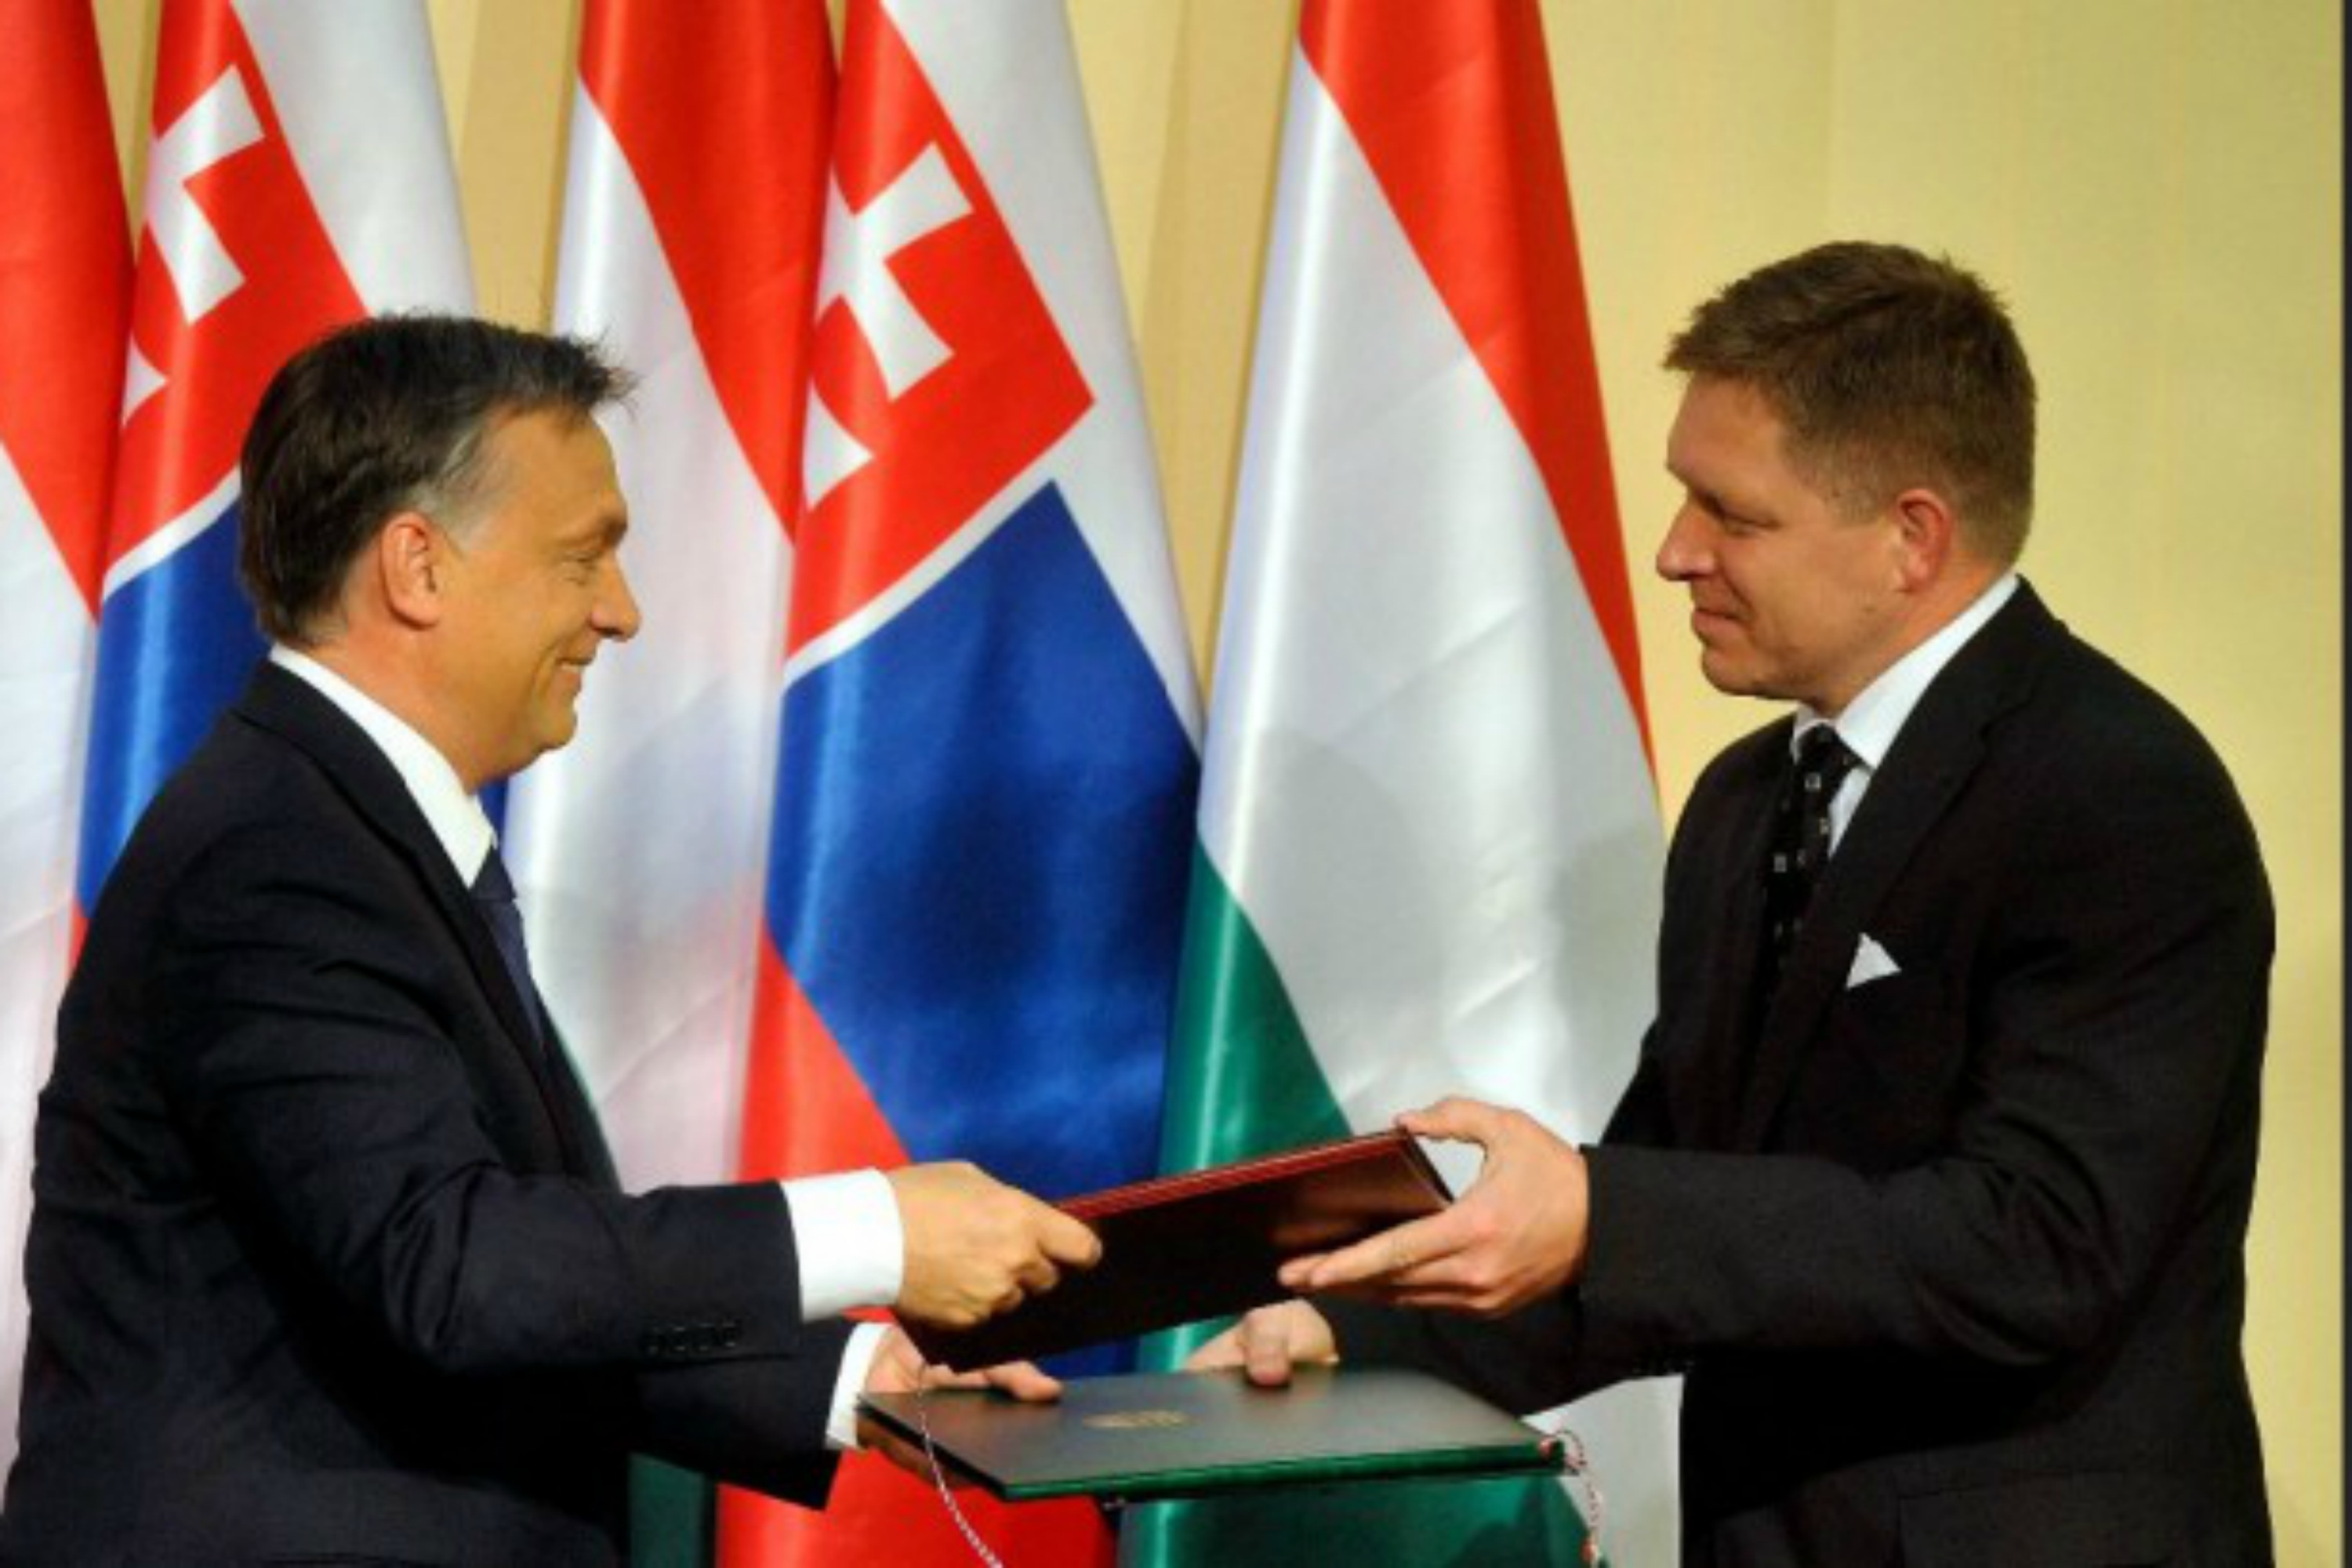 Viktor Orbán and Robert Fico